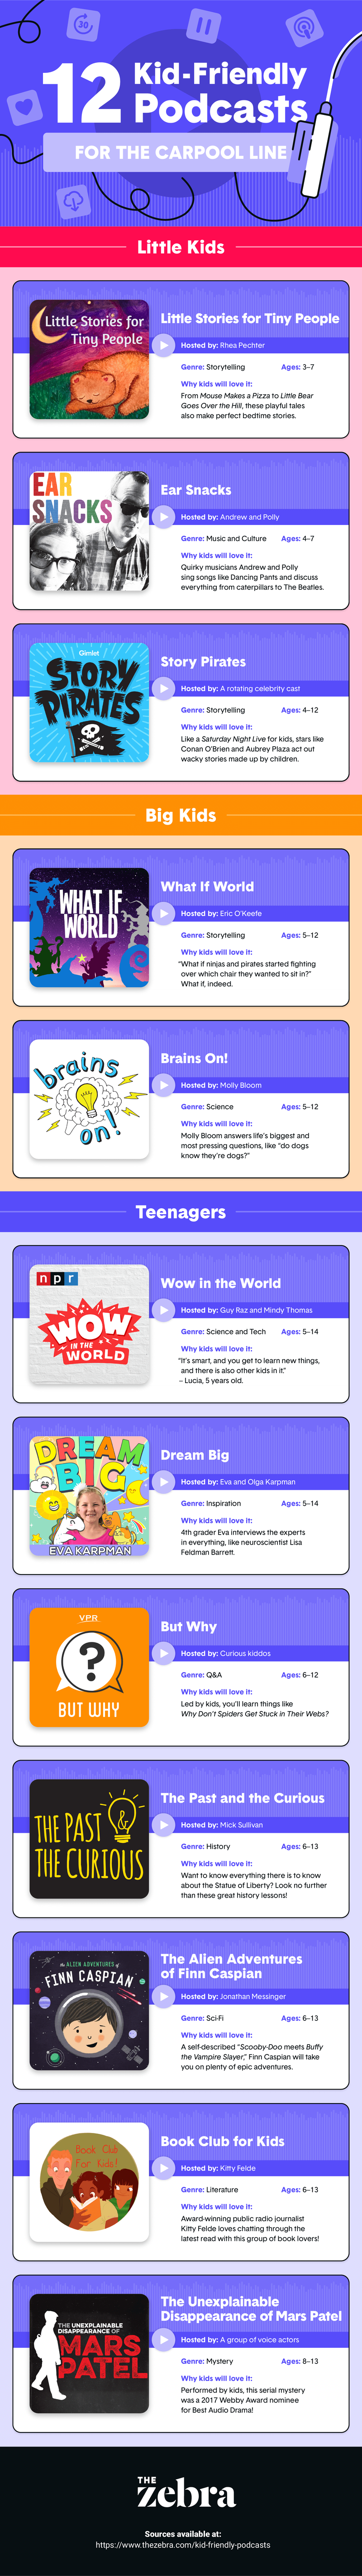 best kid-friendly podcasts infographic